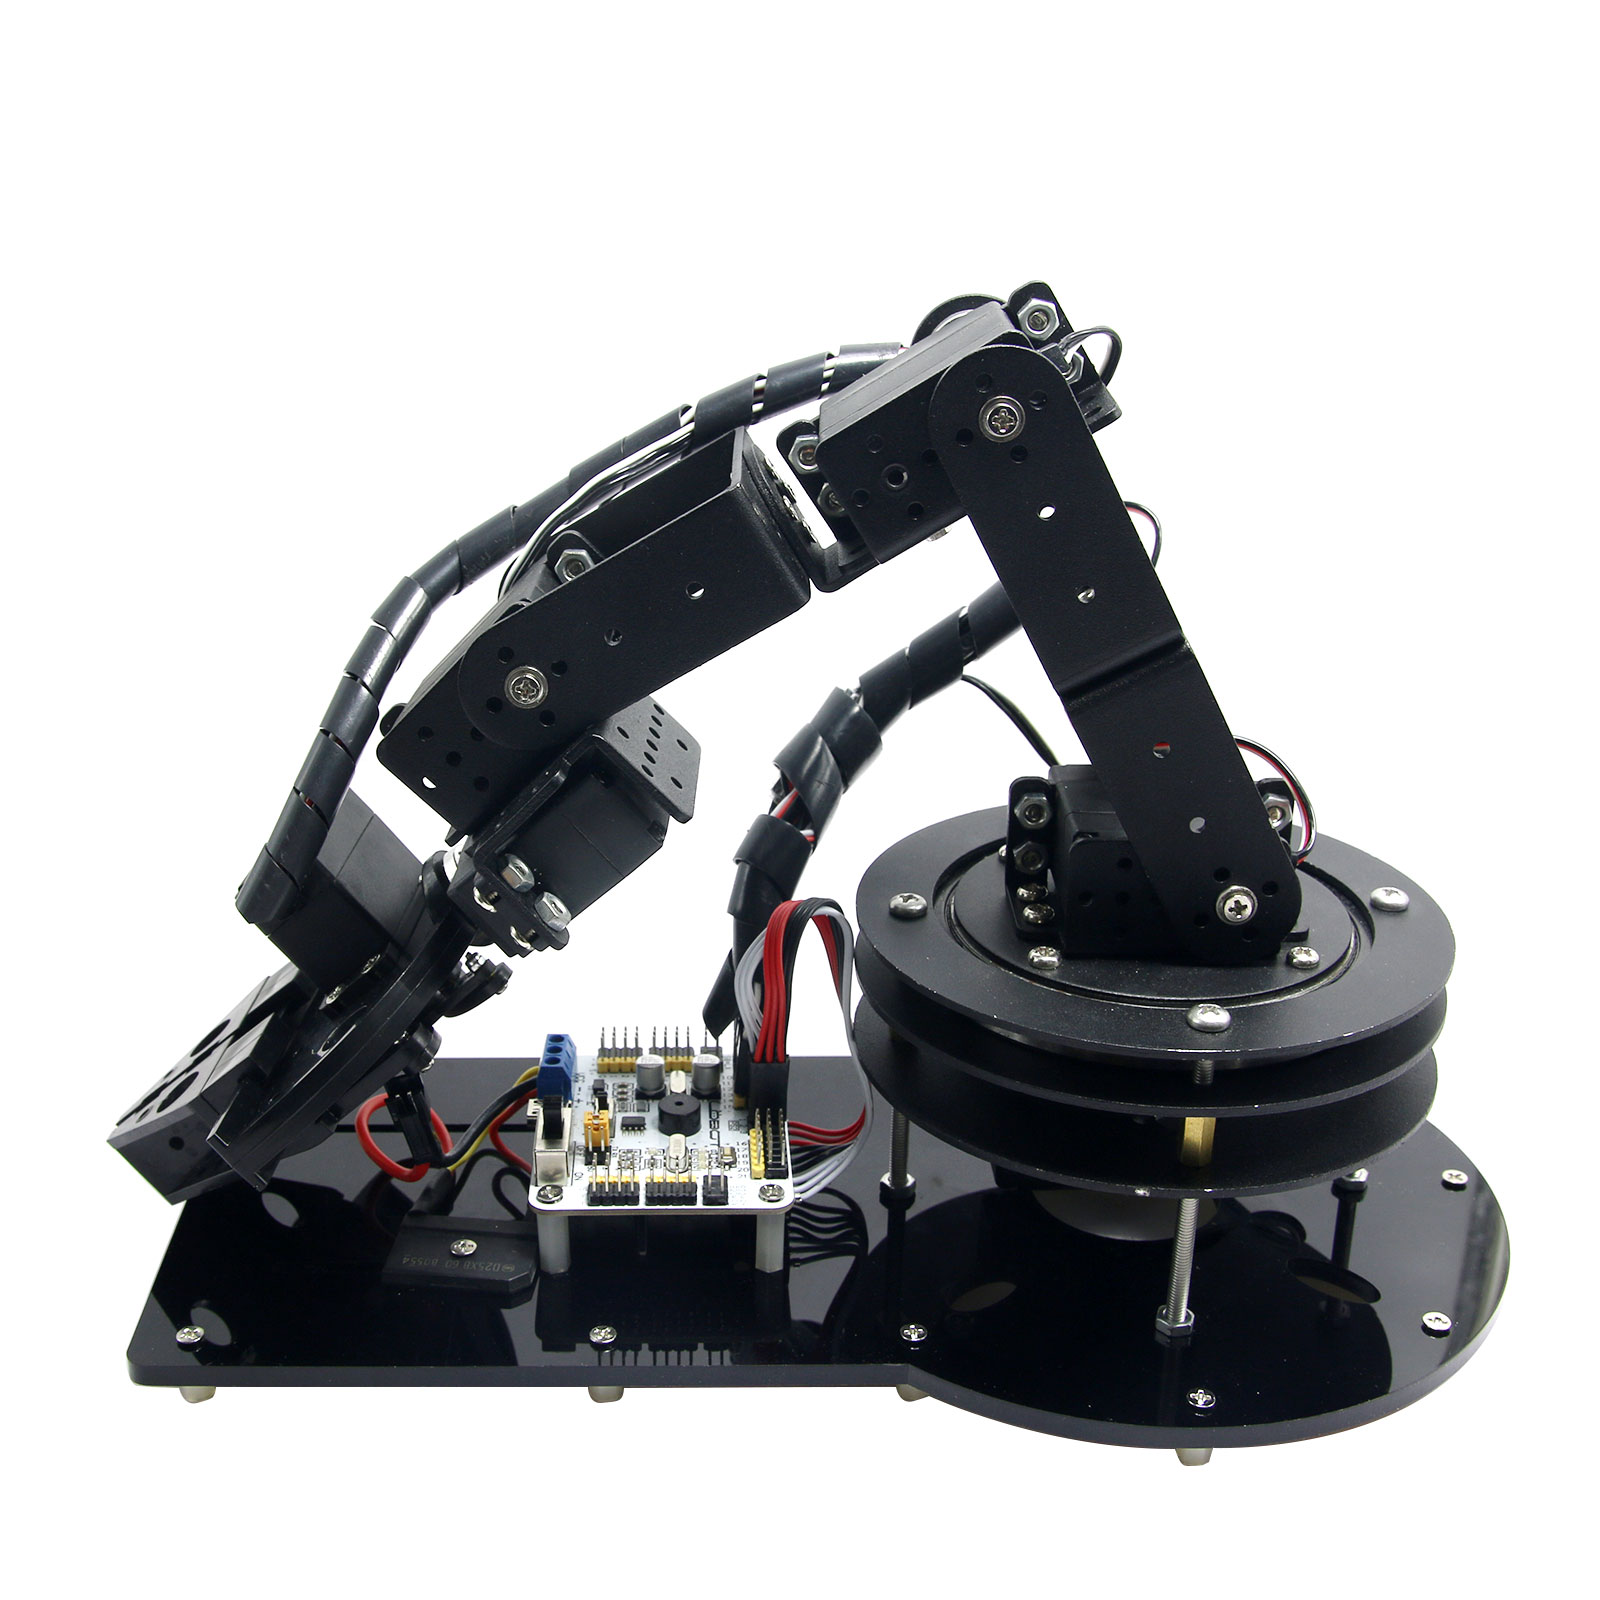 machine extends robotic arms - HD1600×1600